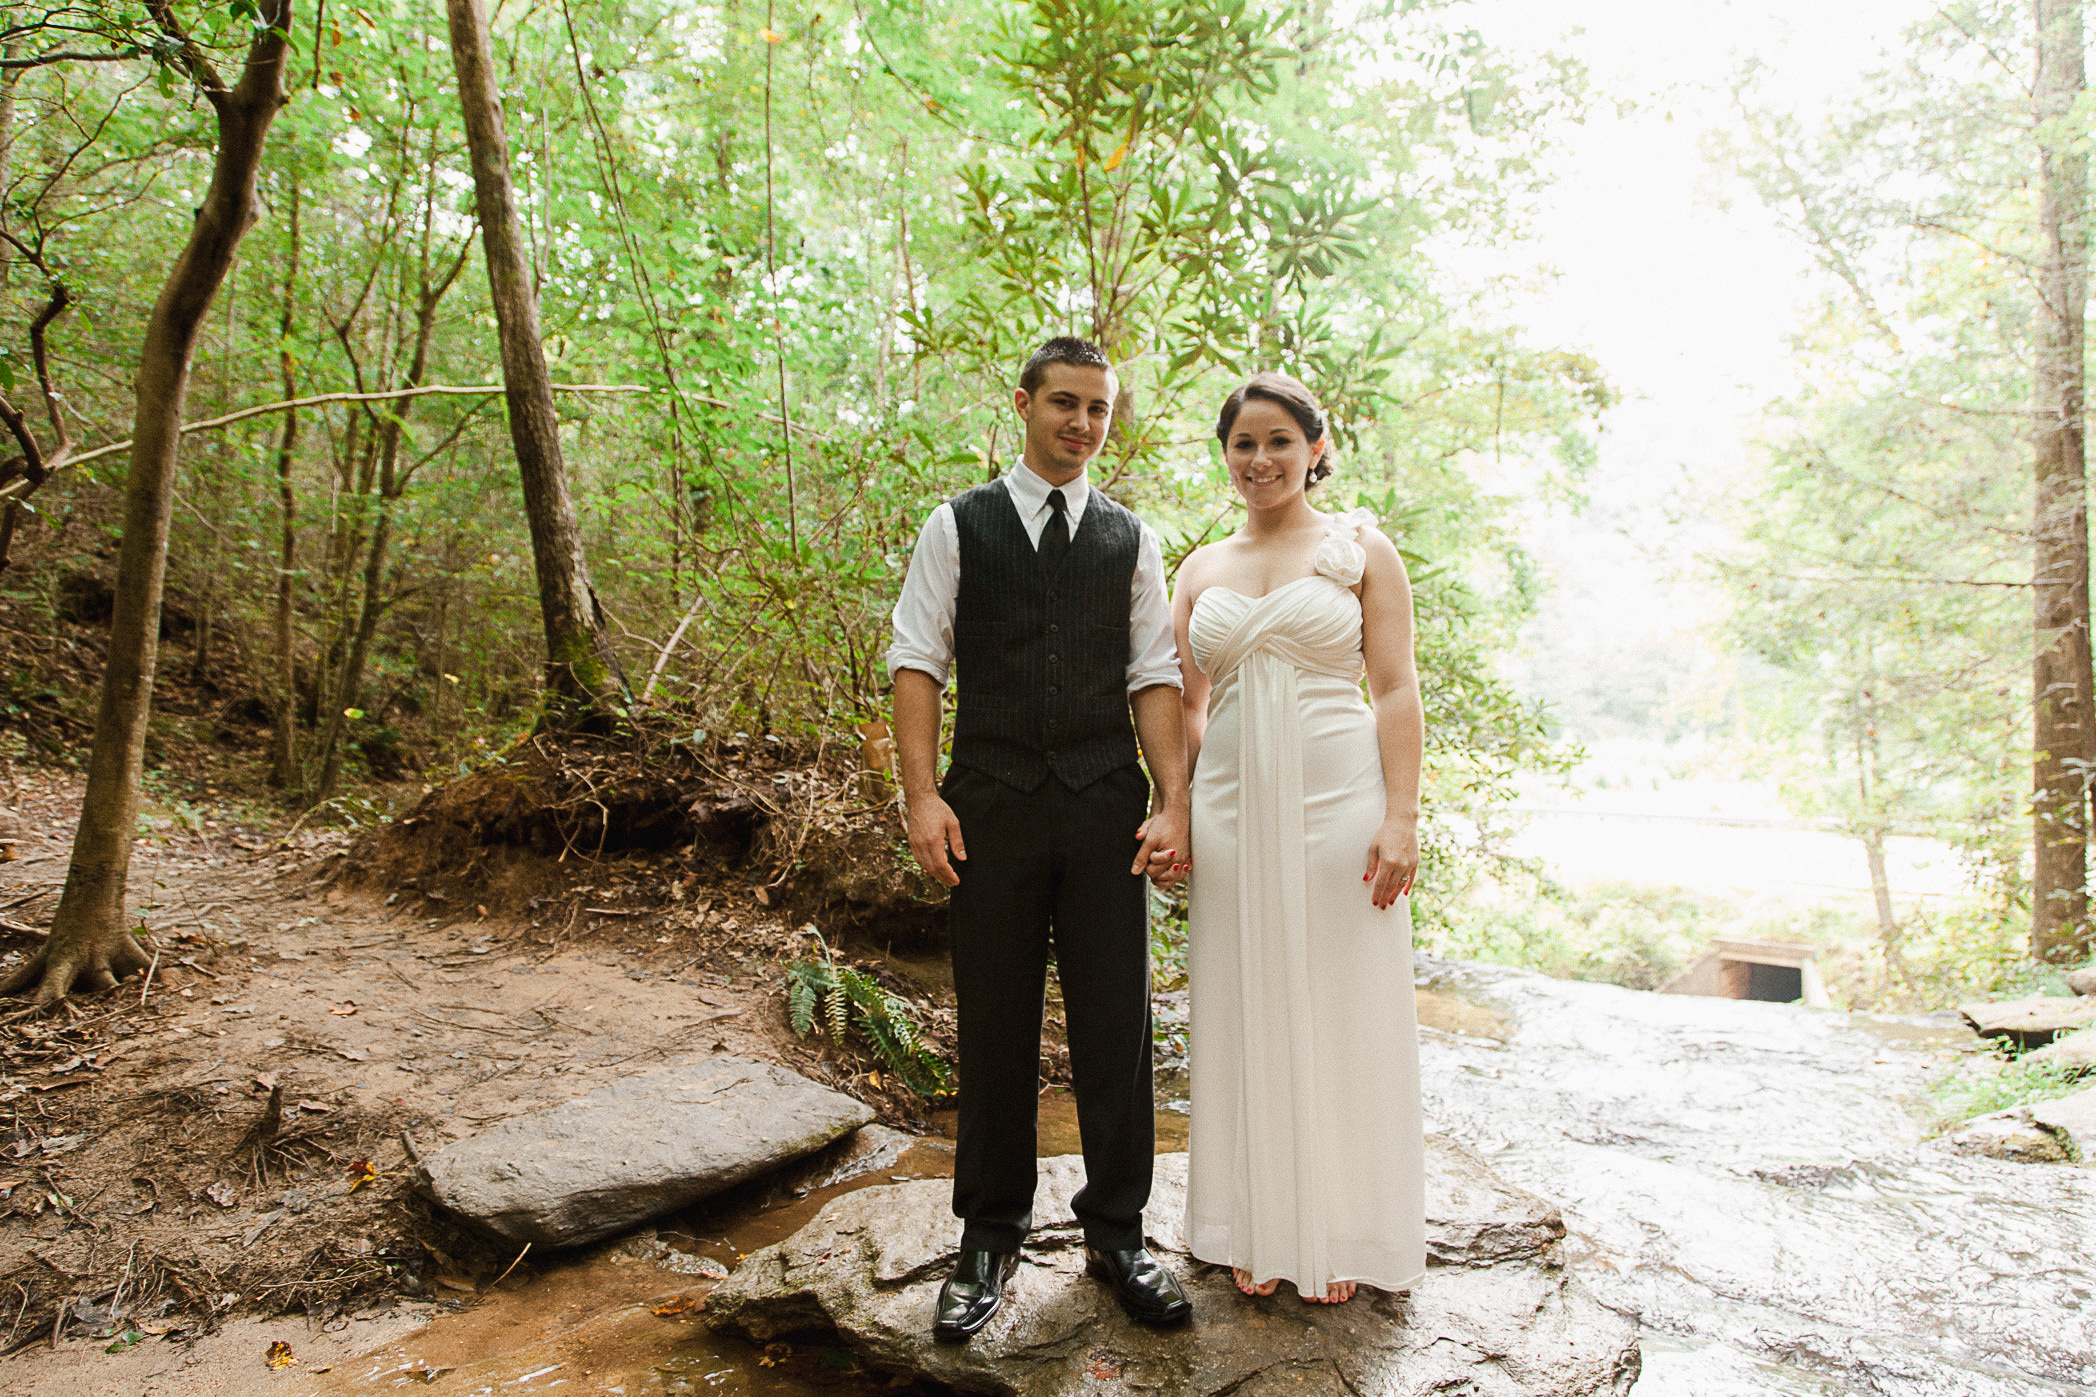 wildcat_falls_wedding (15 of 36).jpg